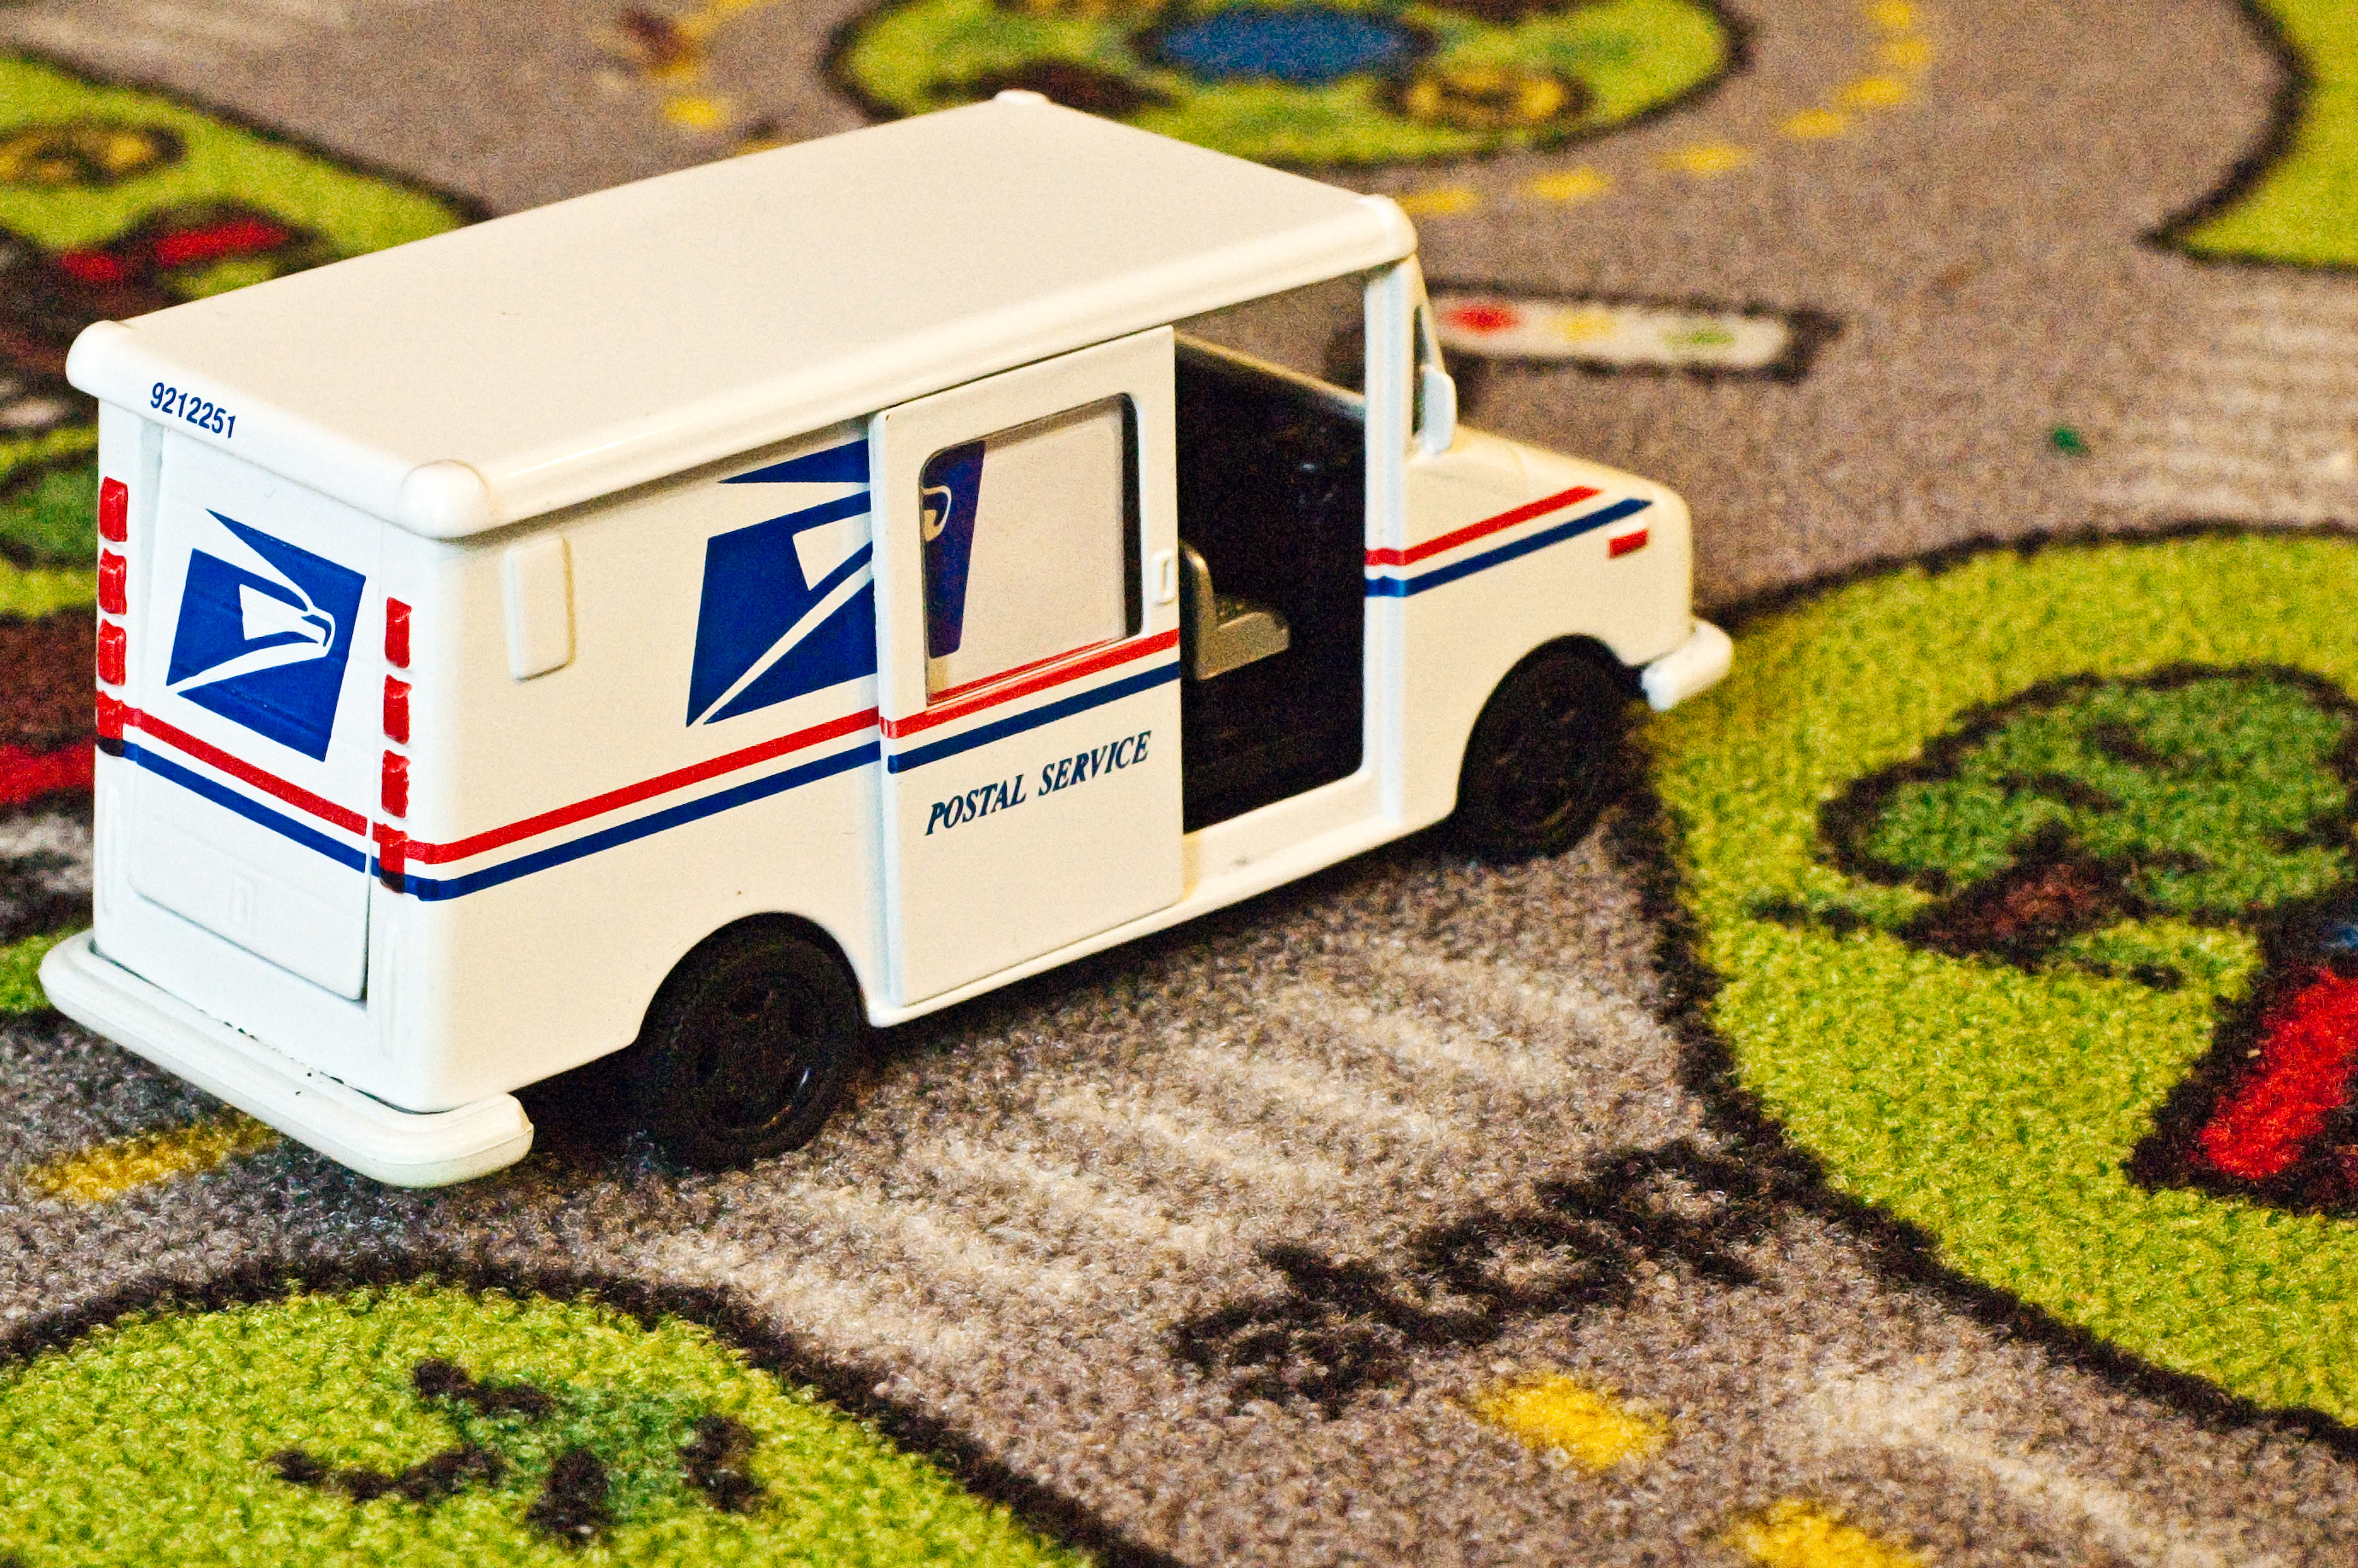 How the post office created america details agencys historic how the post office created america details agencys historic signficance 905 wesa solutioingenieria Gallery